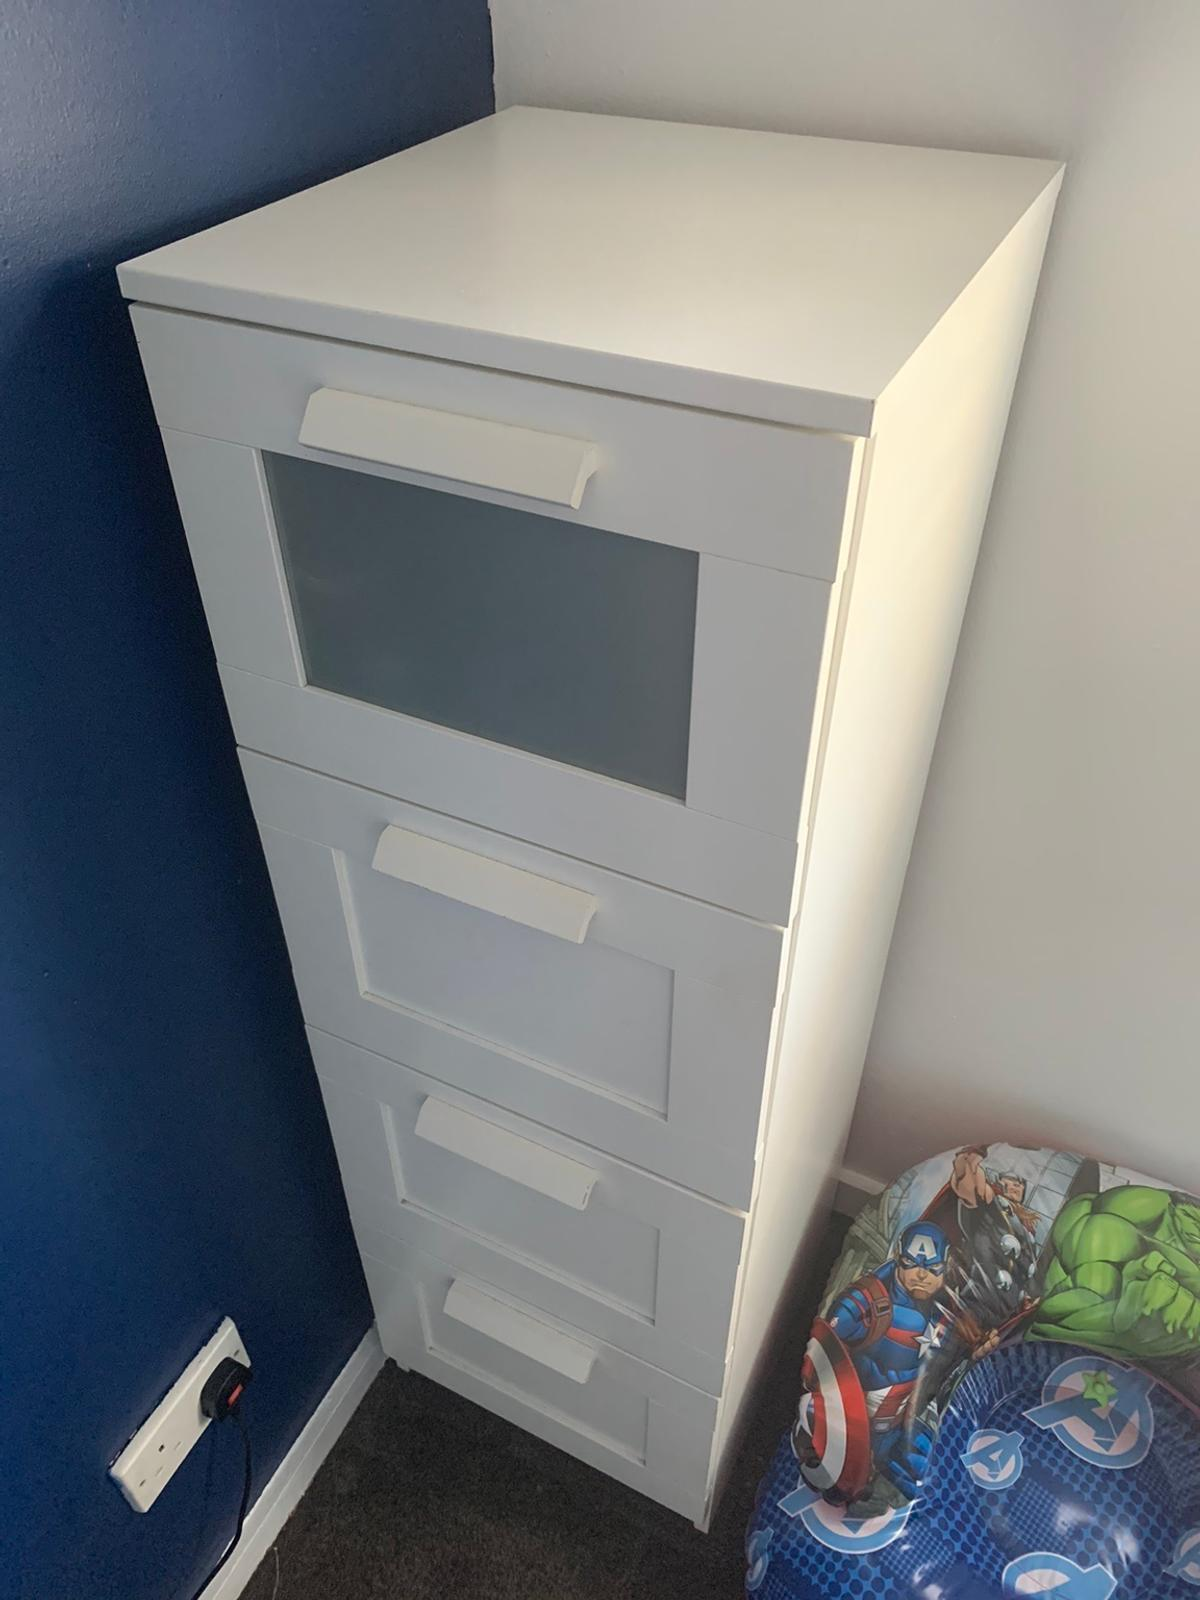 Picture of: Ikea Brimnes Drawers In B45 Birmingham For 30 00 For Sale Shpock